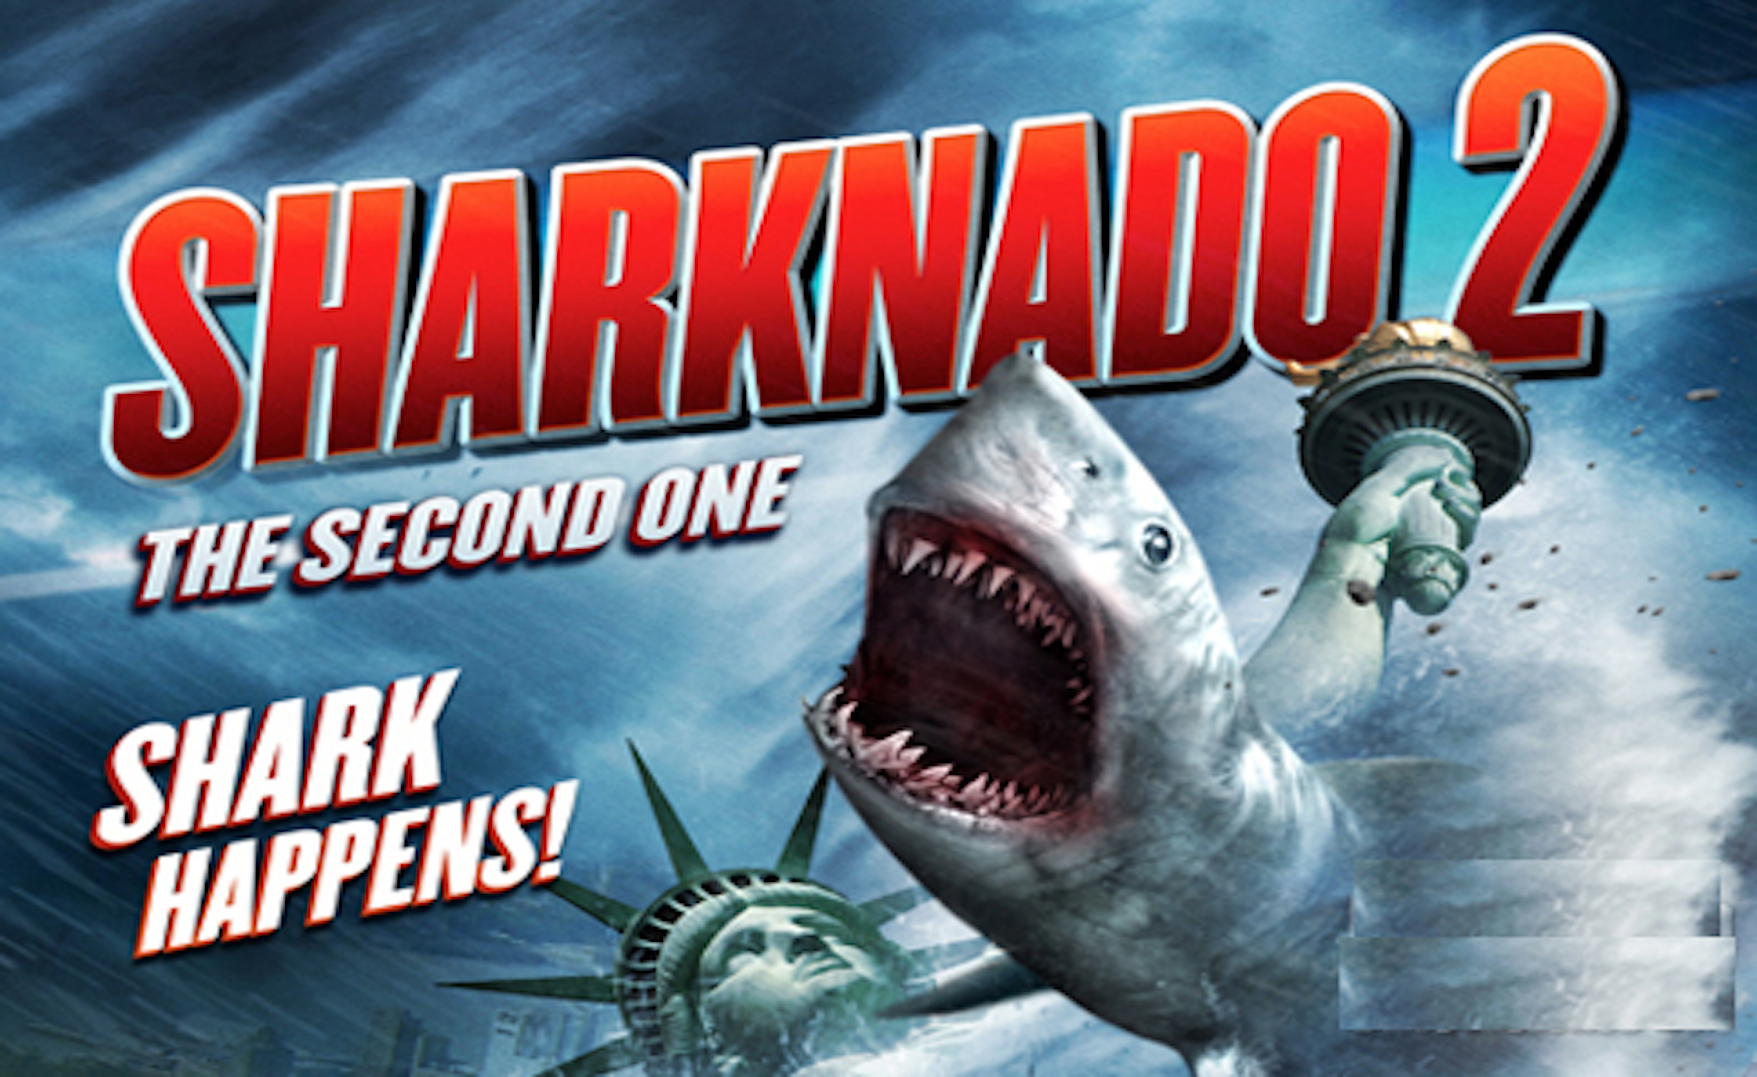 http://wasahiro.files.wordpress.com/2014/02/sharknado-2-banner.png